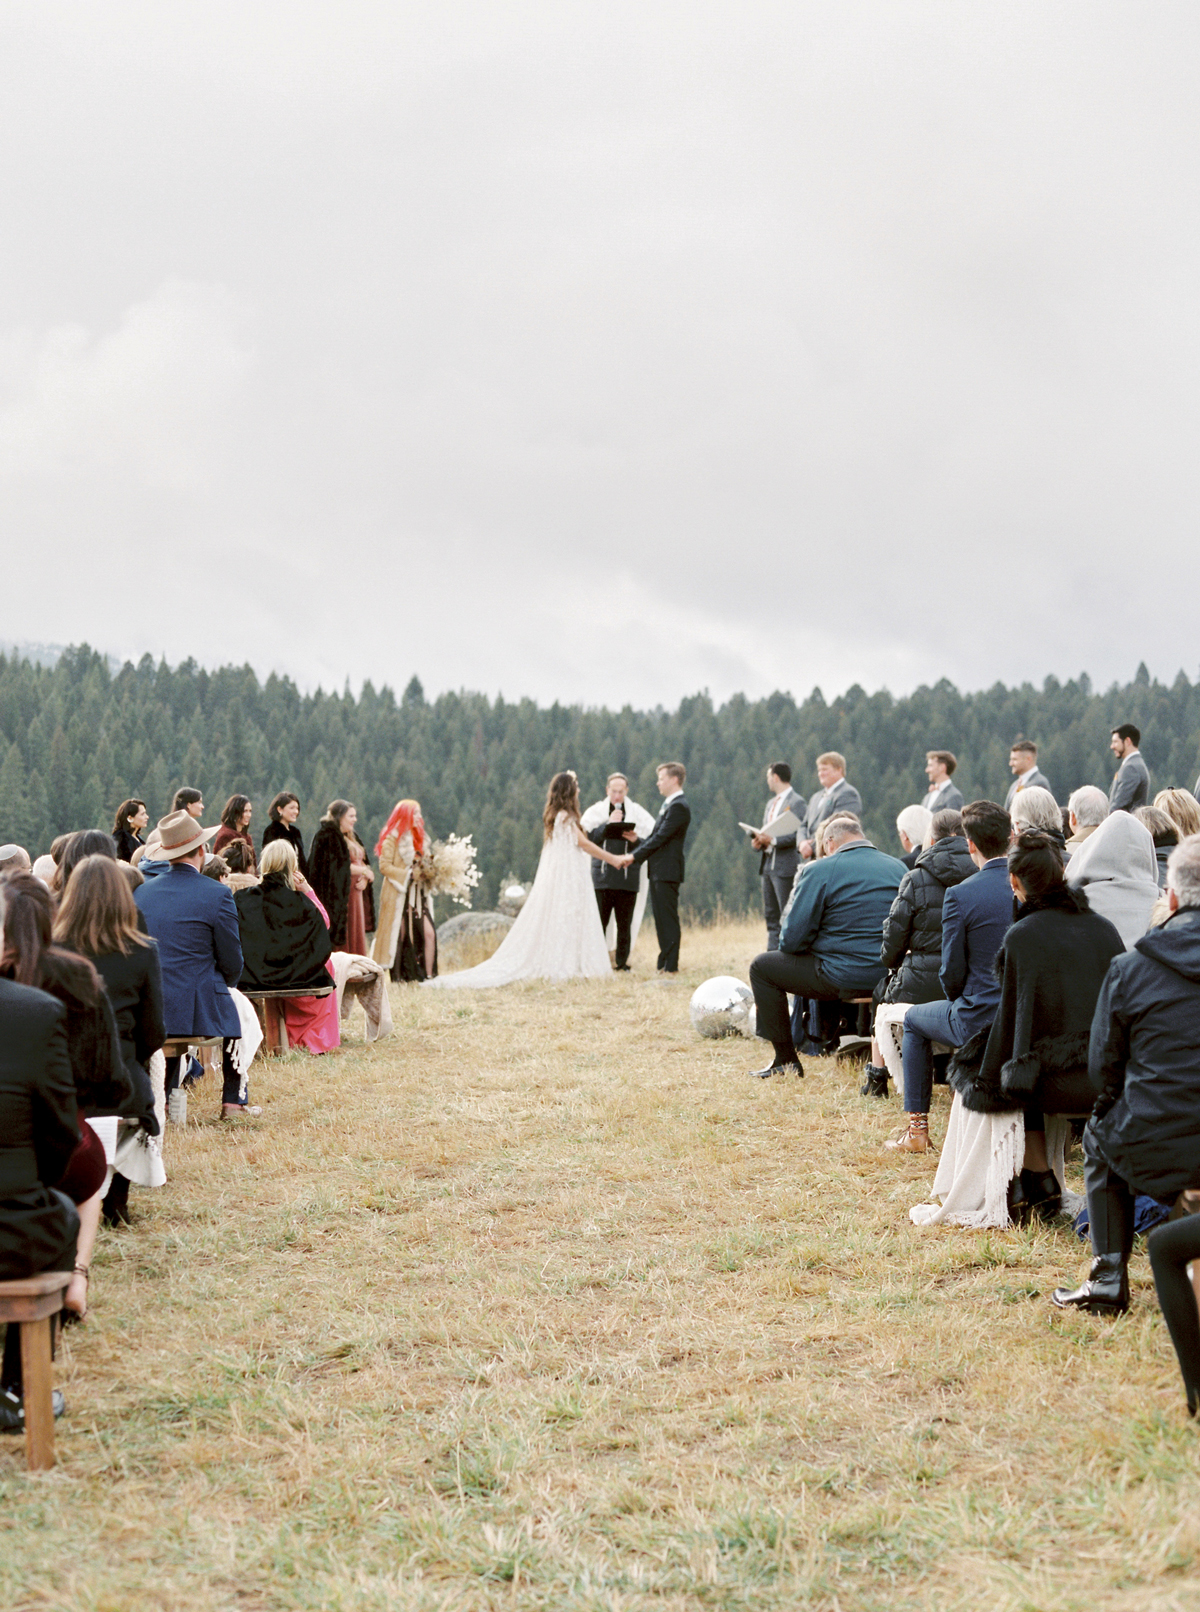 outdoor wedding ceremony with pine trees in background